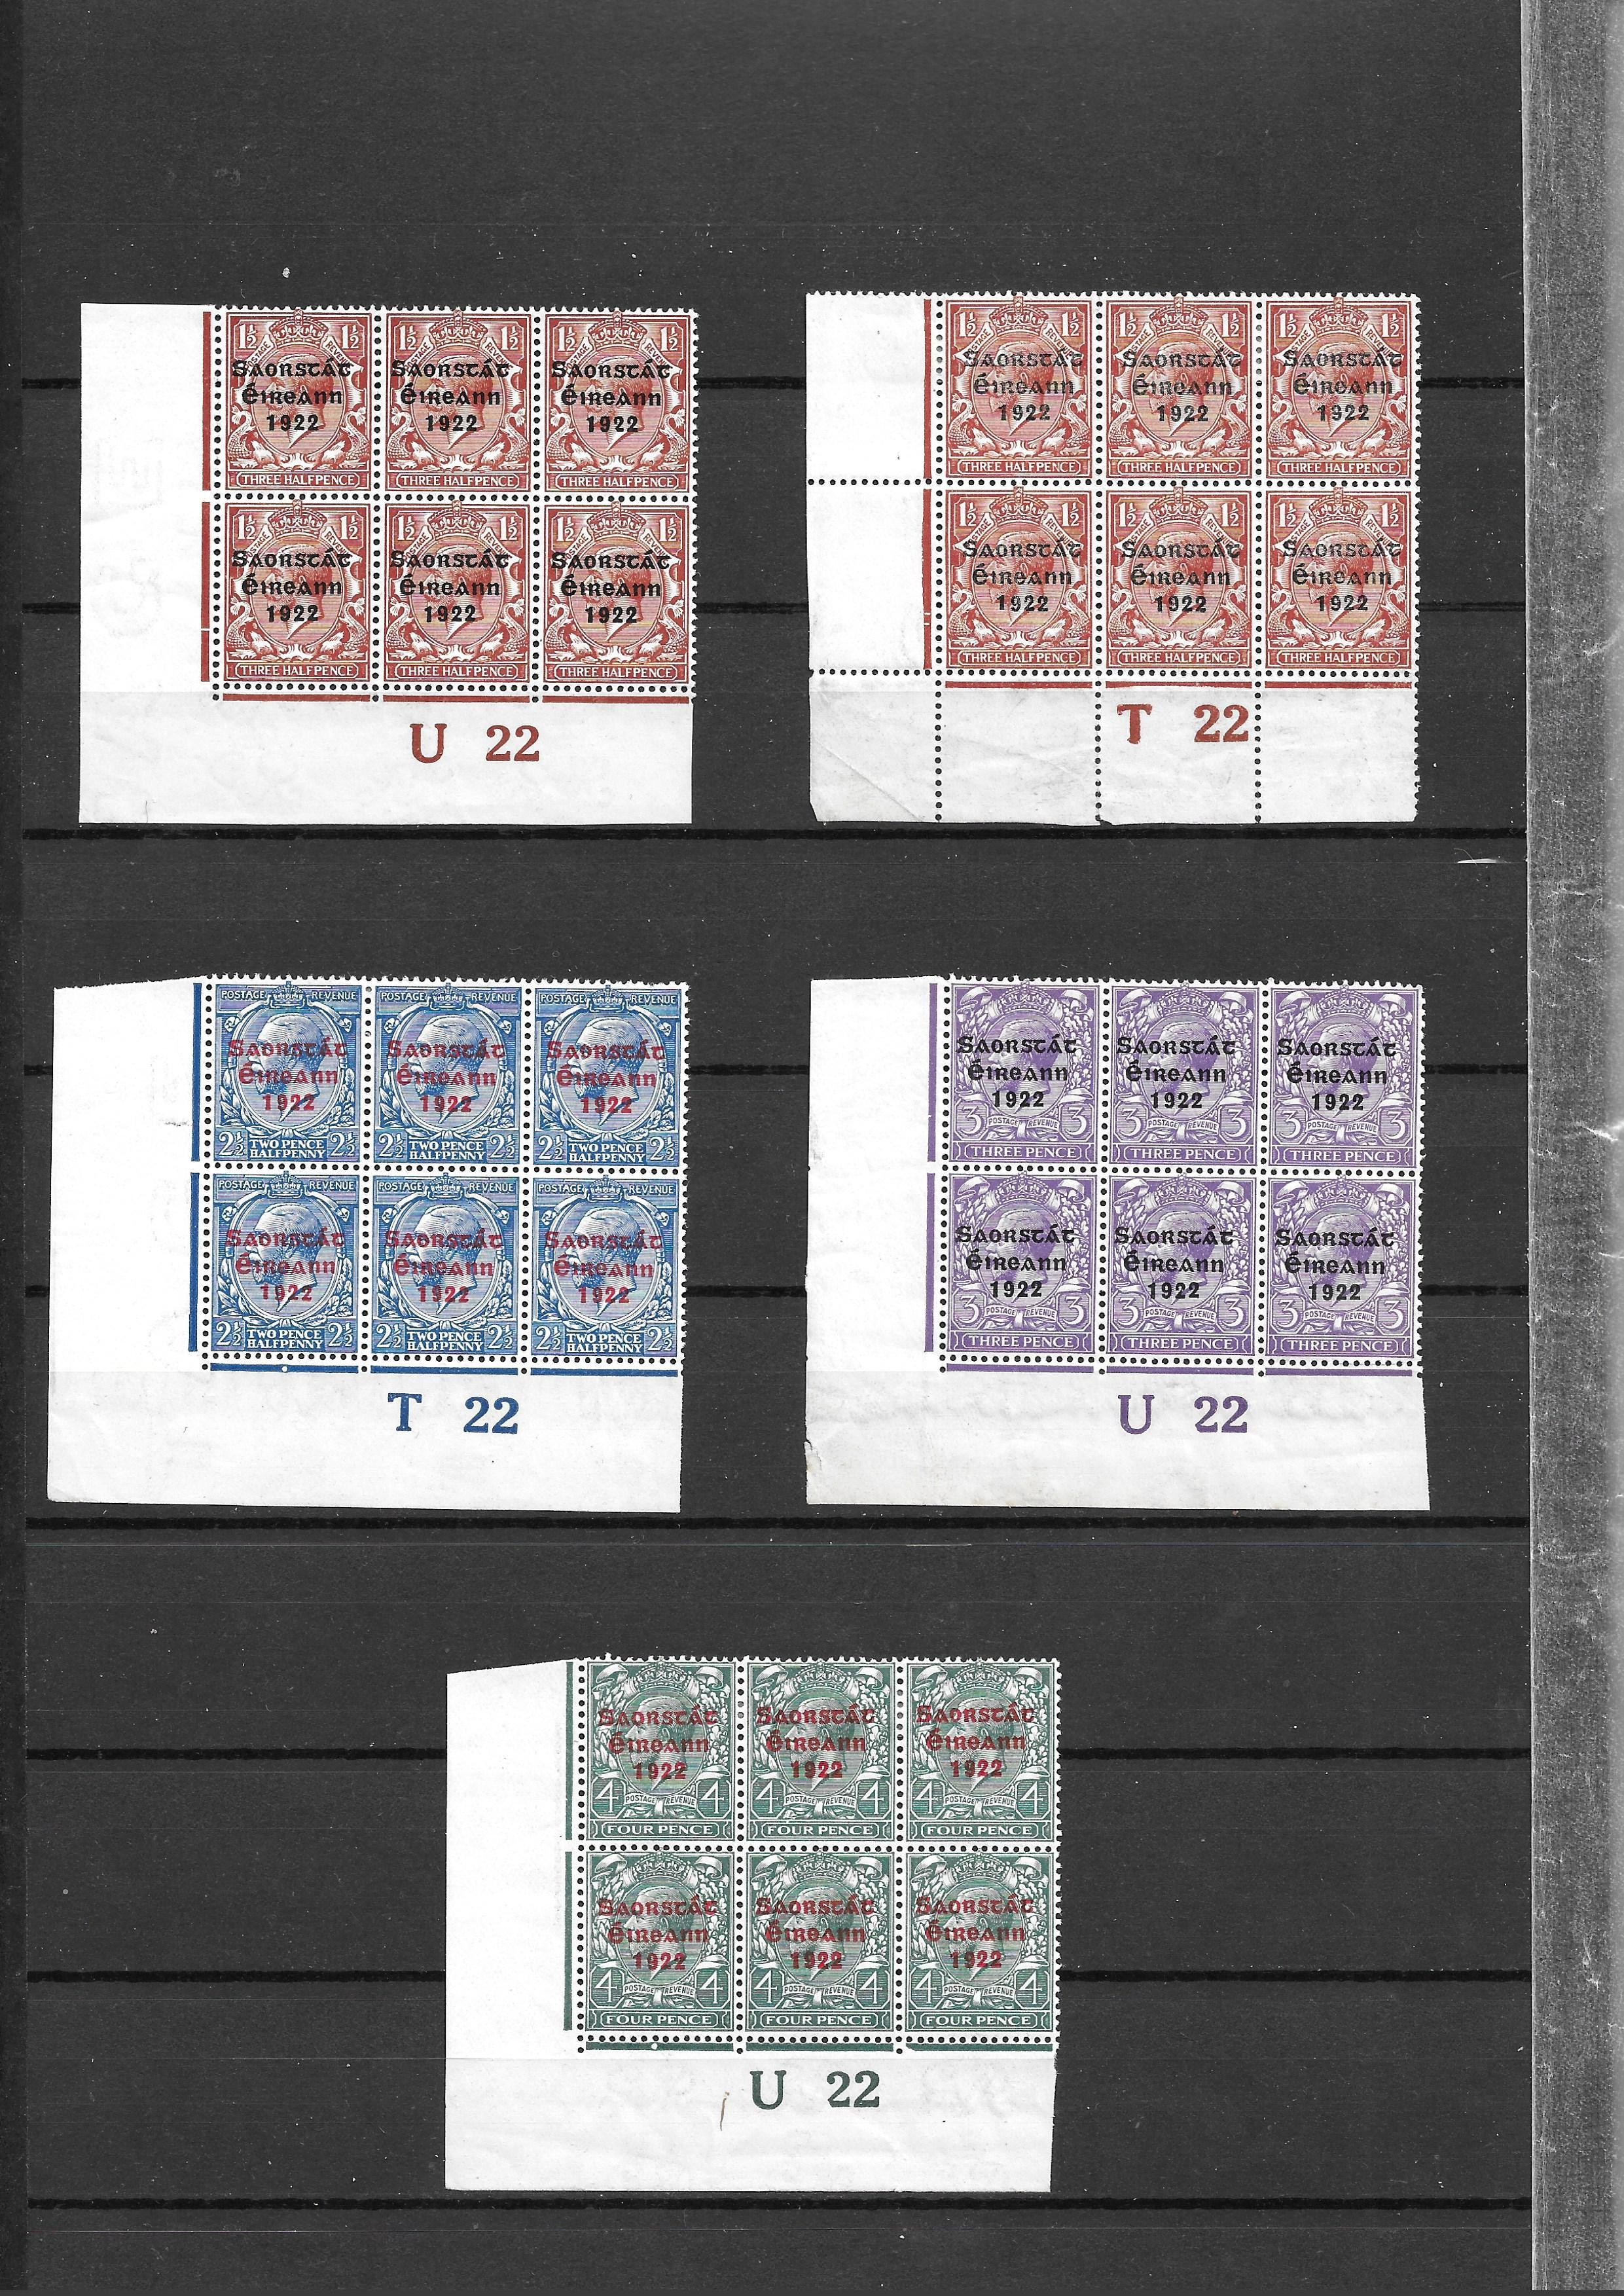 Ireland 1922 GV overprints selection of 21 plate number blocks and strips with values form 1/2d to - Image 2 of 5